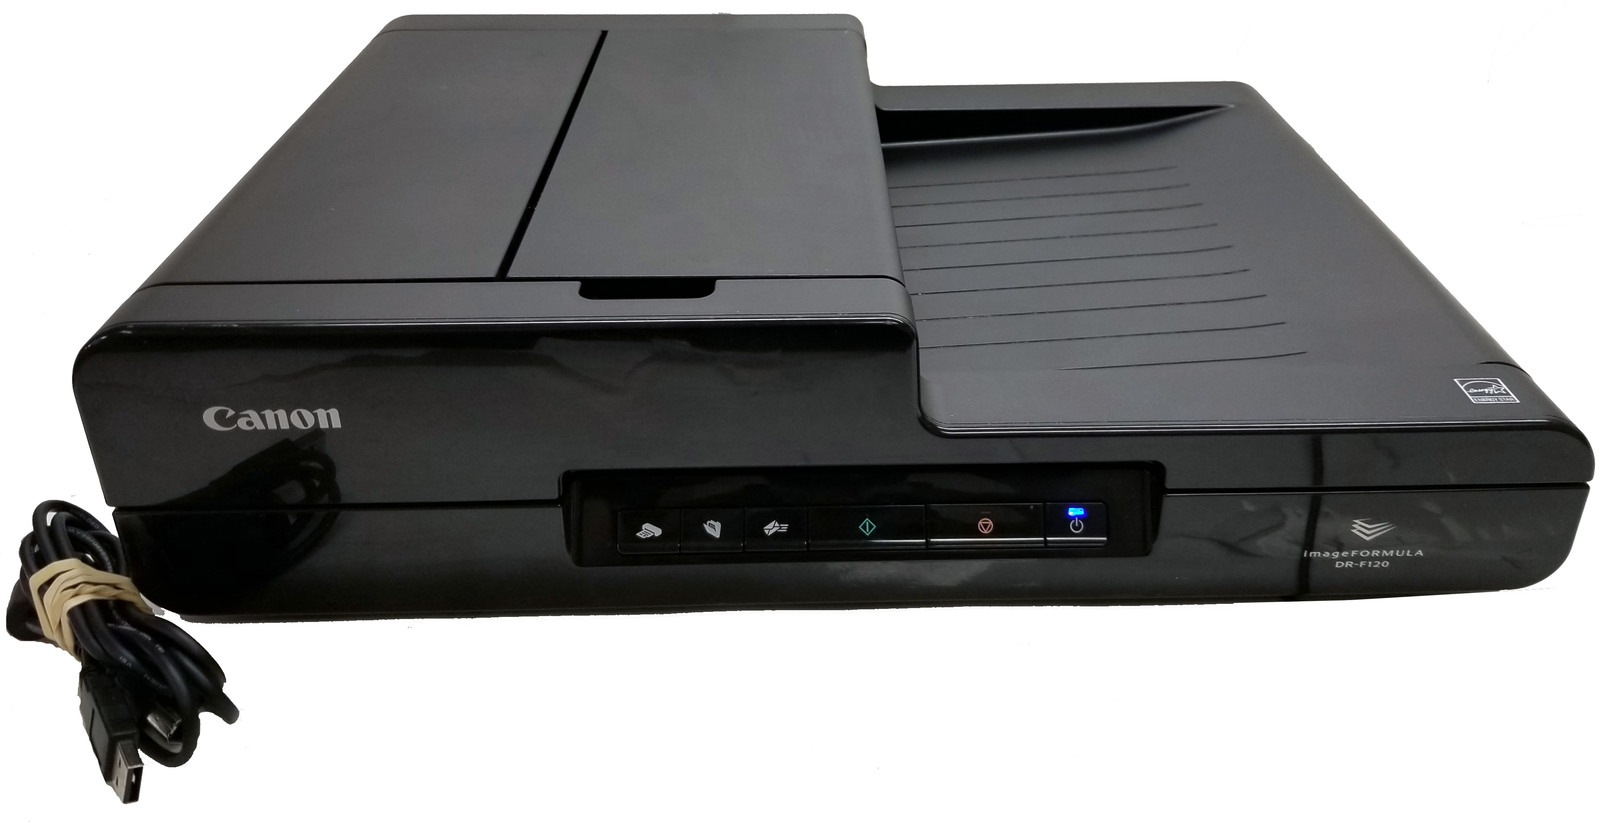 Canon DR-F120 Flatbed imageFORMULA  Document Scanner Bin:11